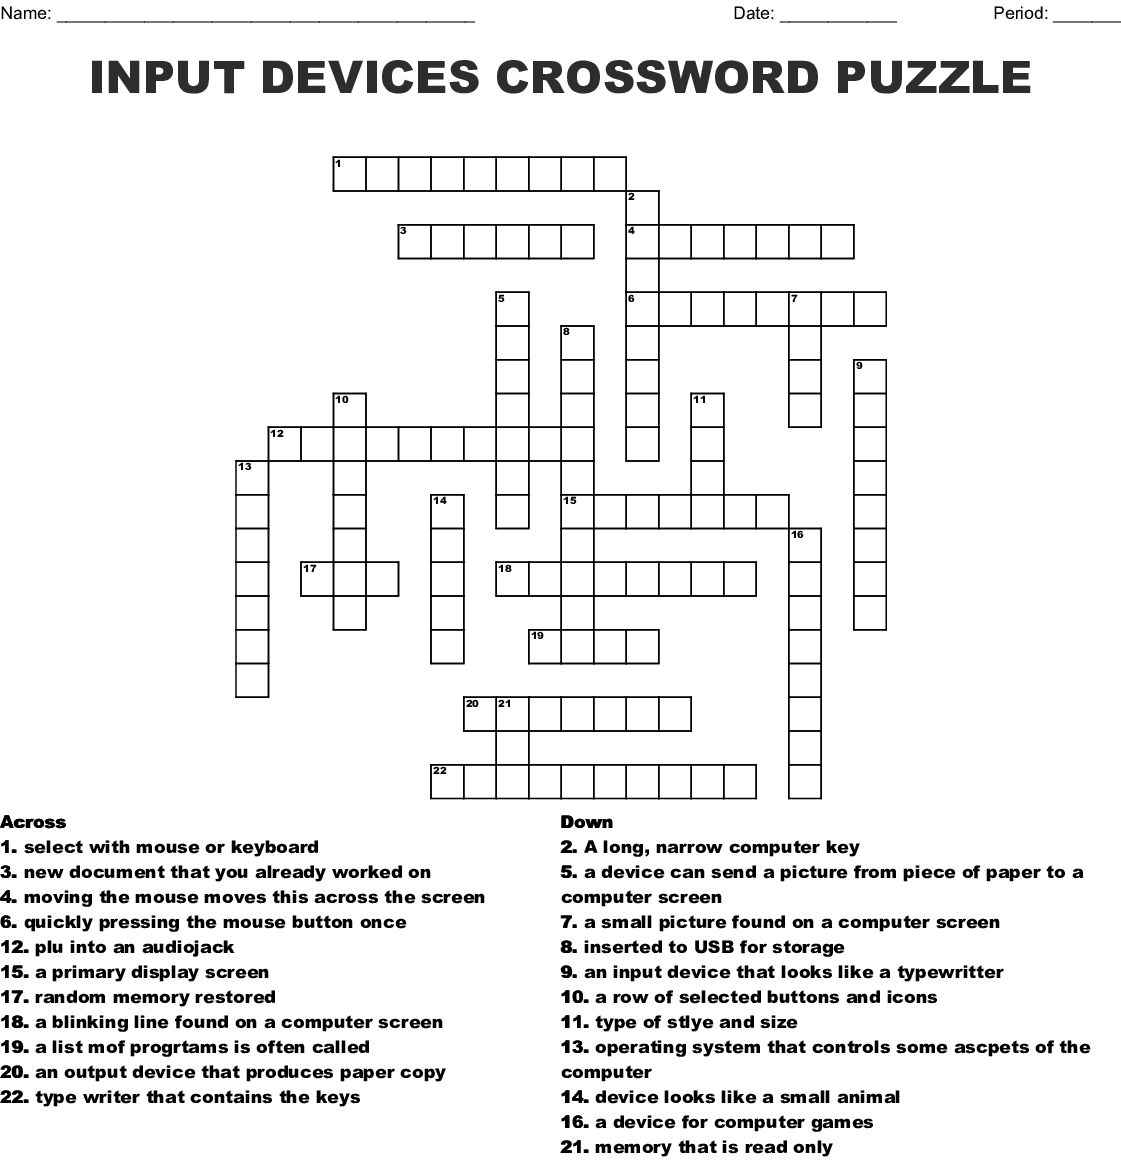 Input Devices Crossword Puzzle